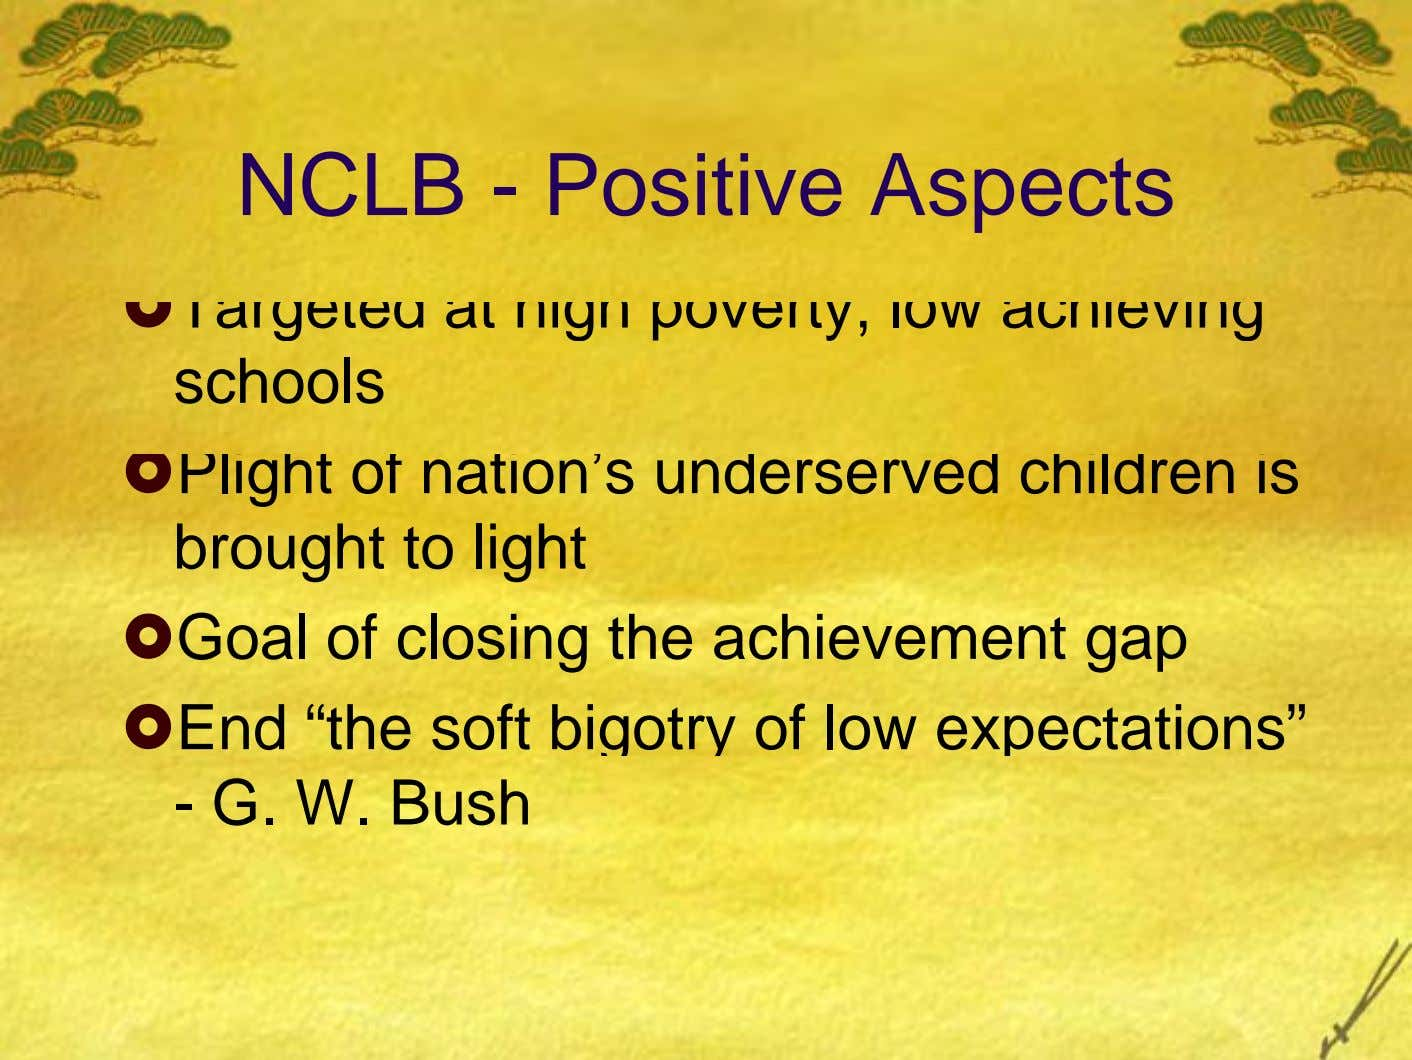 NCLB - Positive Aspects Targeted at high poverty, low achieving schools Plight of nation's underserved children